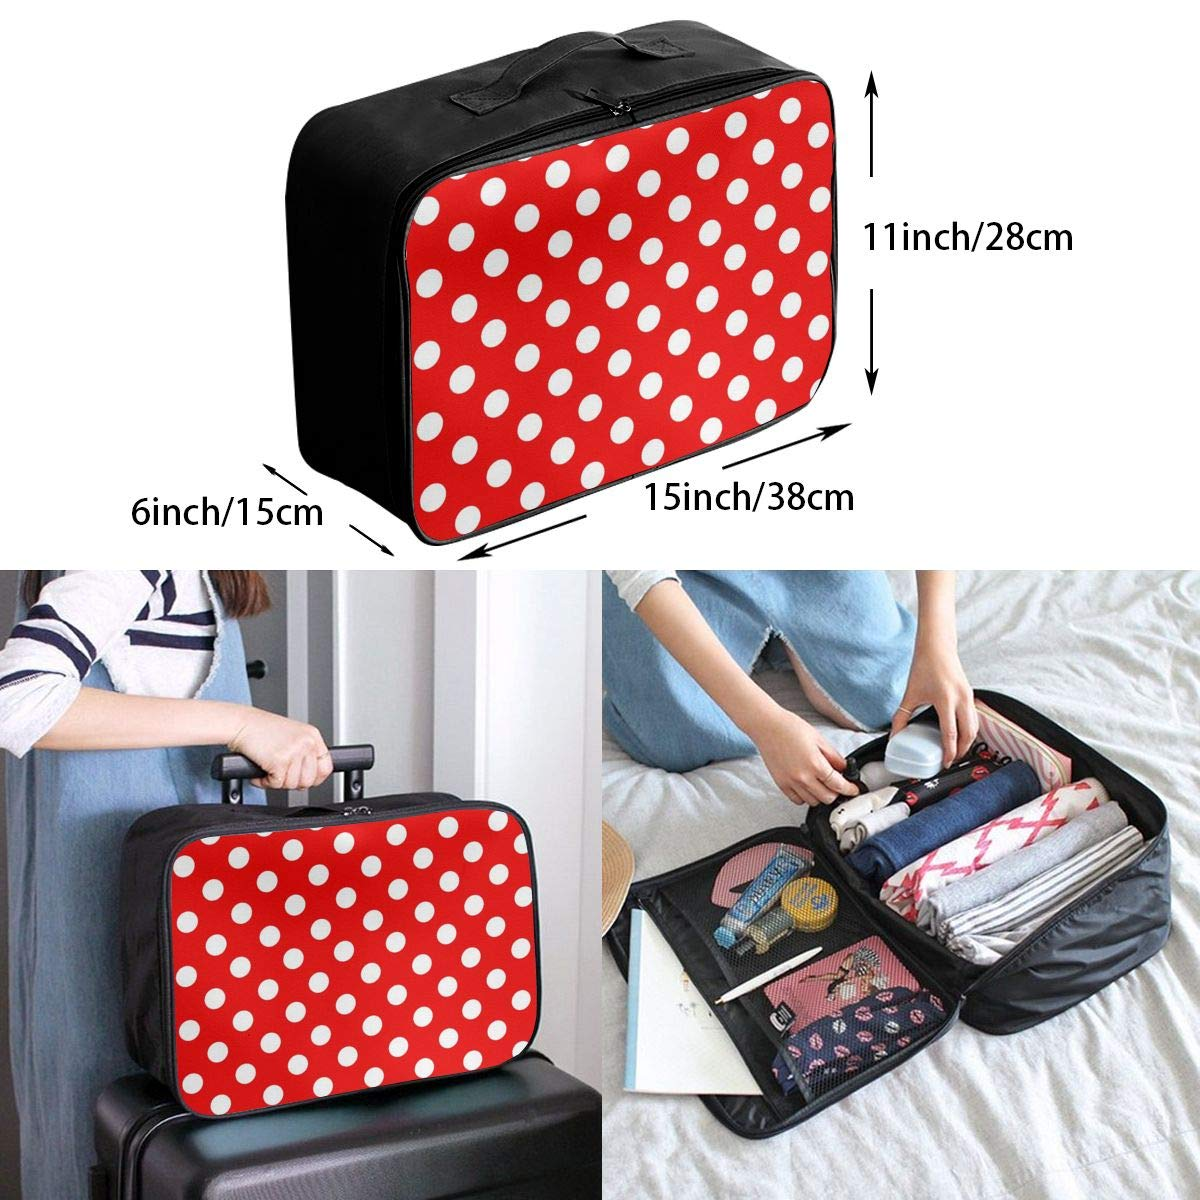 White Polka Dot Red Background Travel Lightweight Waterproof Foldable Storage Portable Luggage Duffle Tote Bag Large Capacity In Trolley Handle Bags 6x11x15 Inch